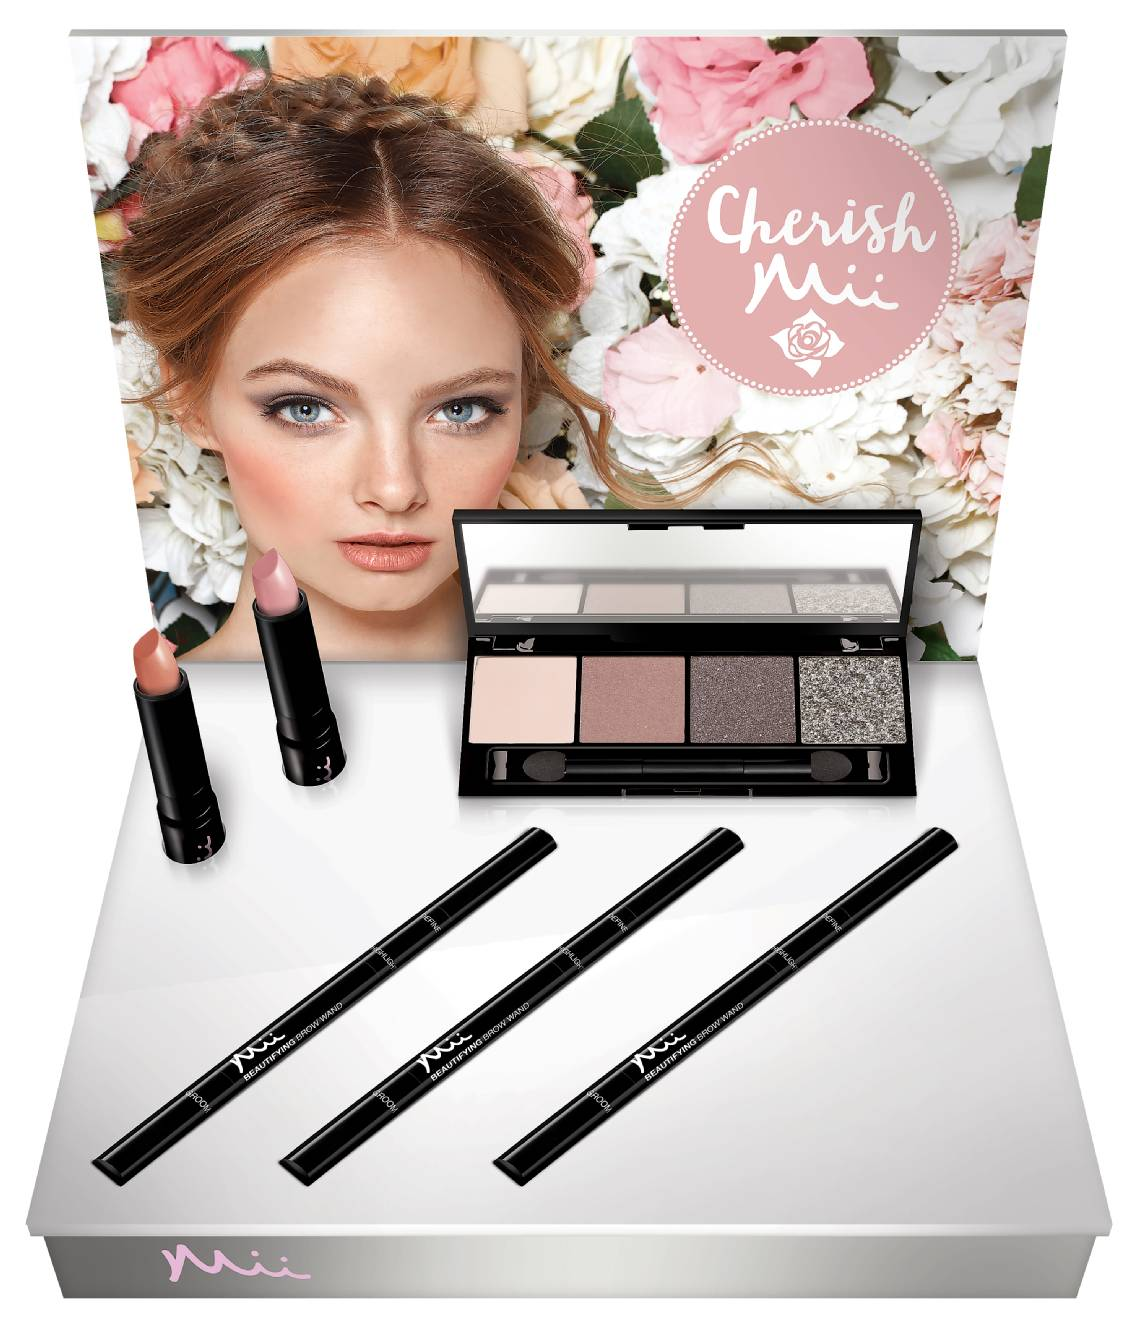 Cherish Mii Display, Mii Cosmetics, Romantik Collection